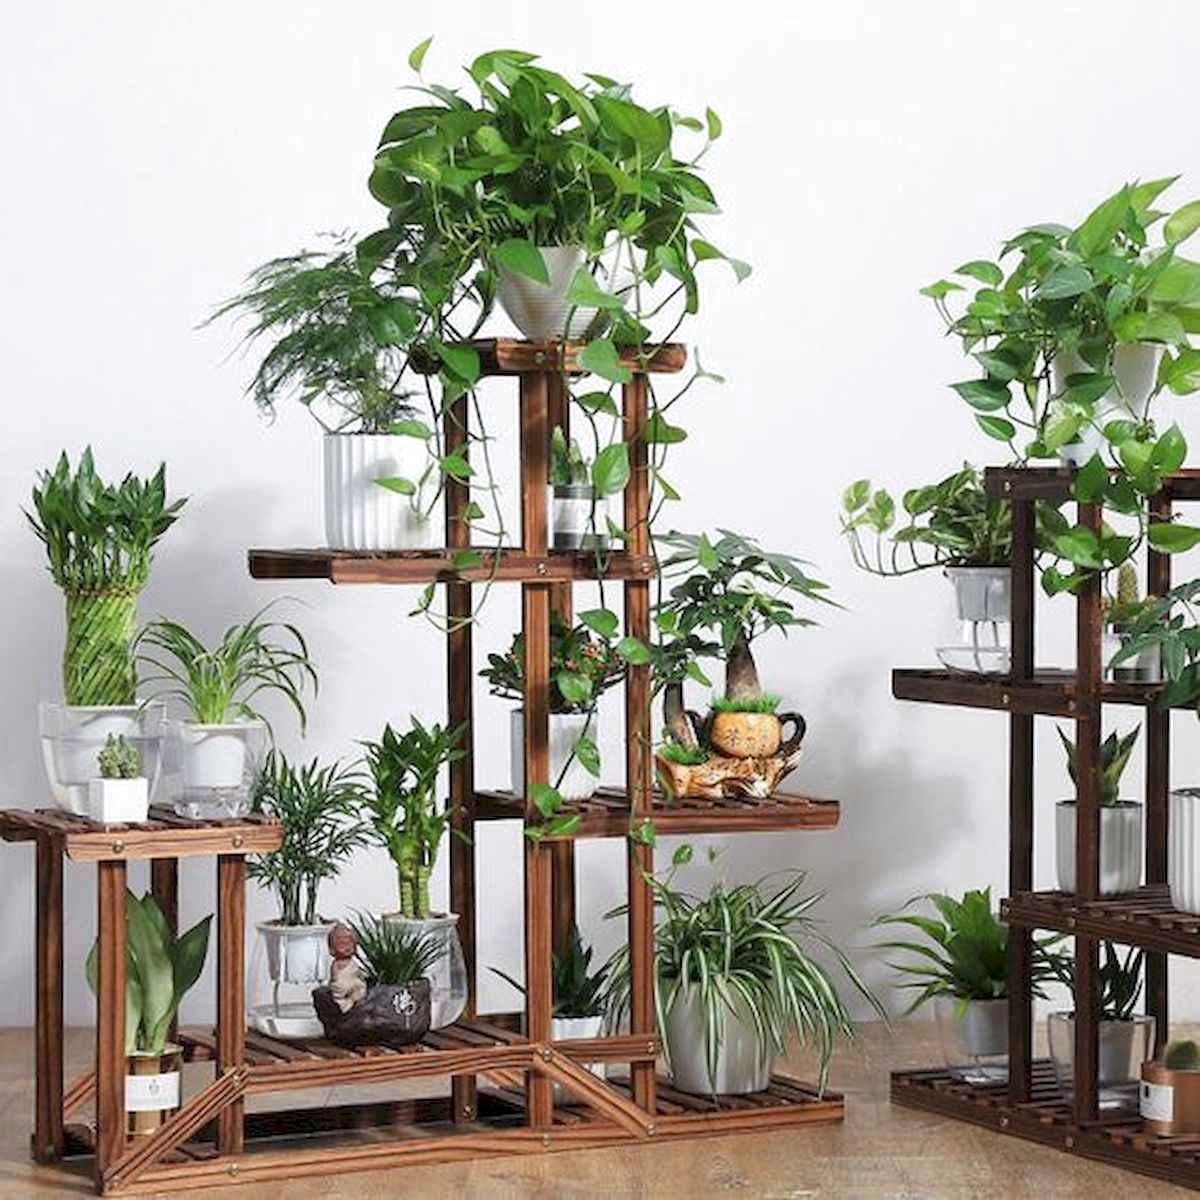 Amazing Indoor Garden For Apartment Design Ideas And ... on Amazing Plant Stand Ideas  id=54903